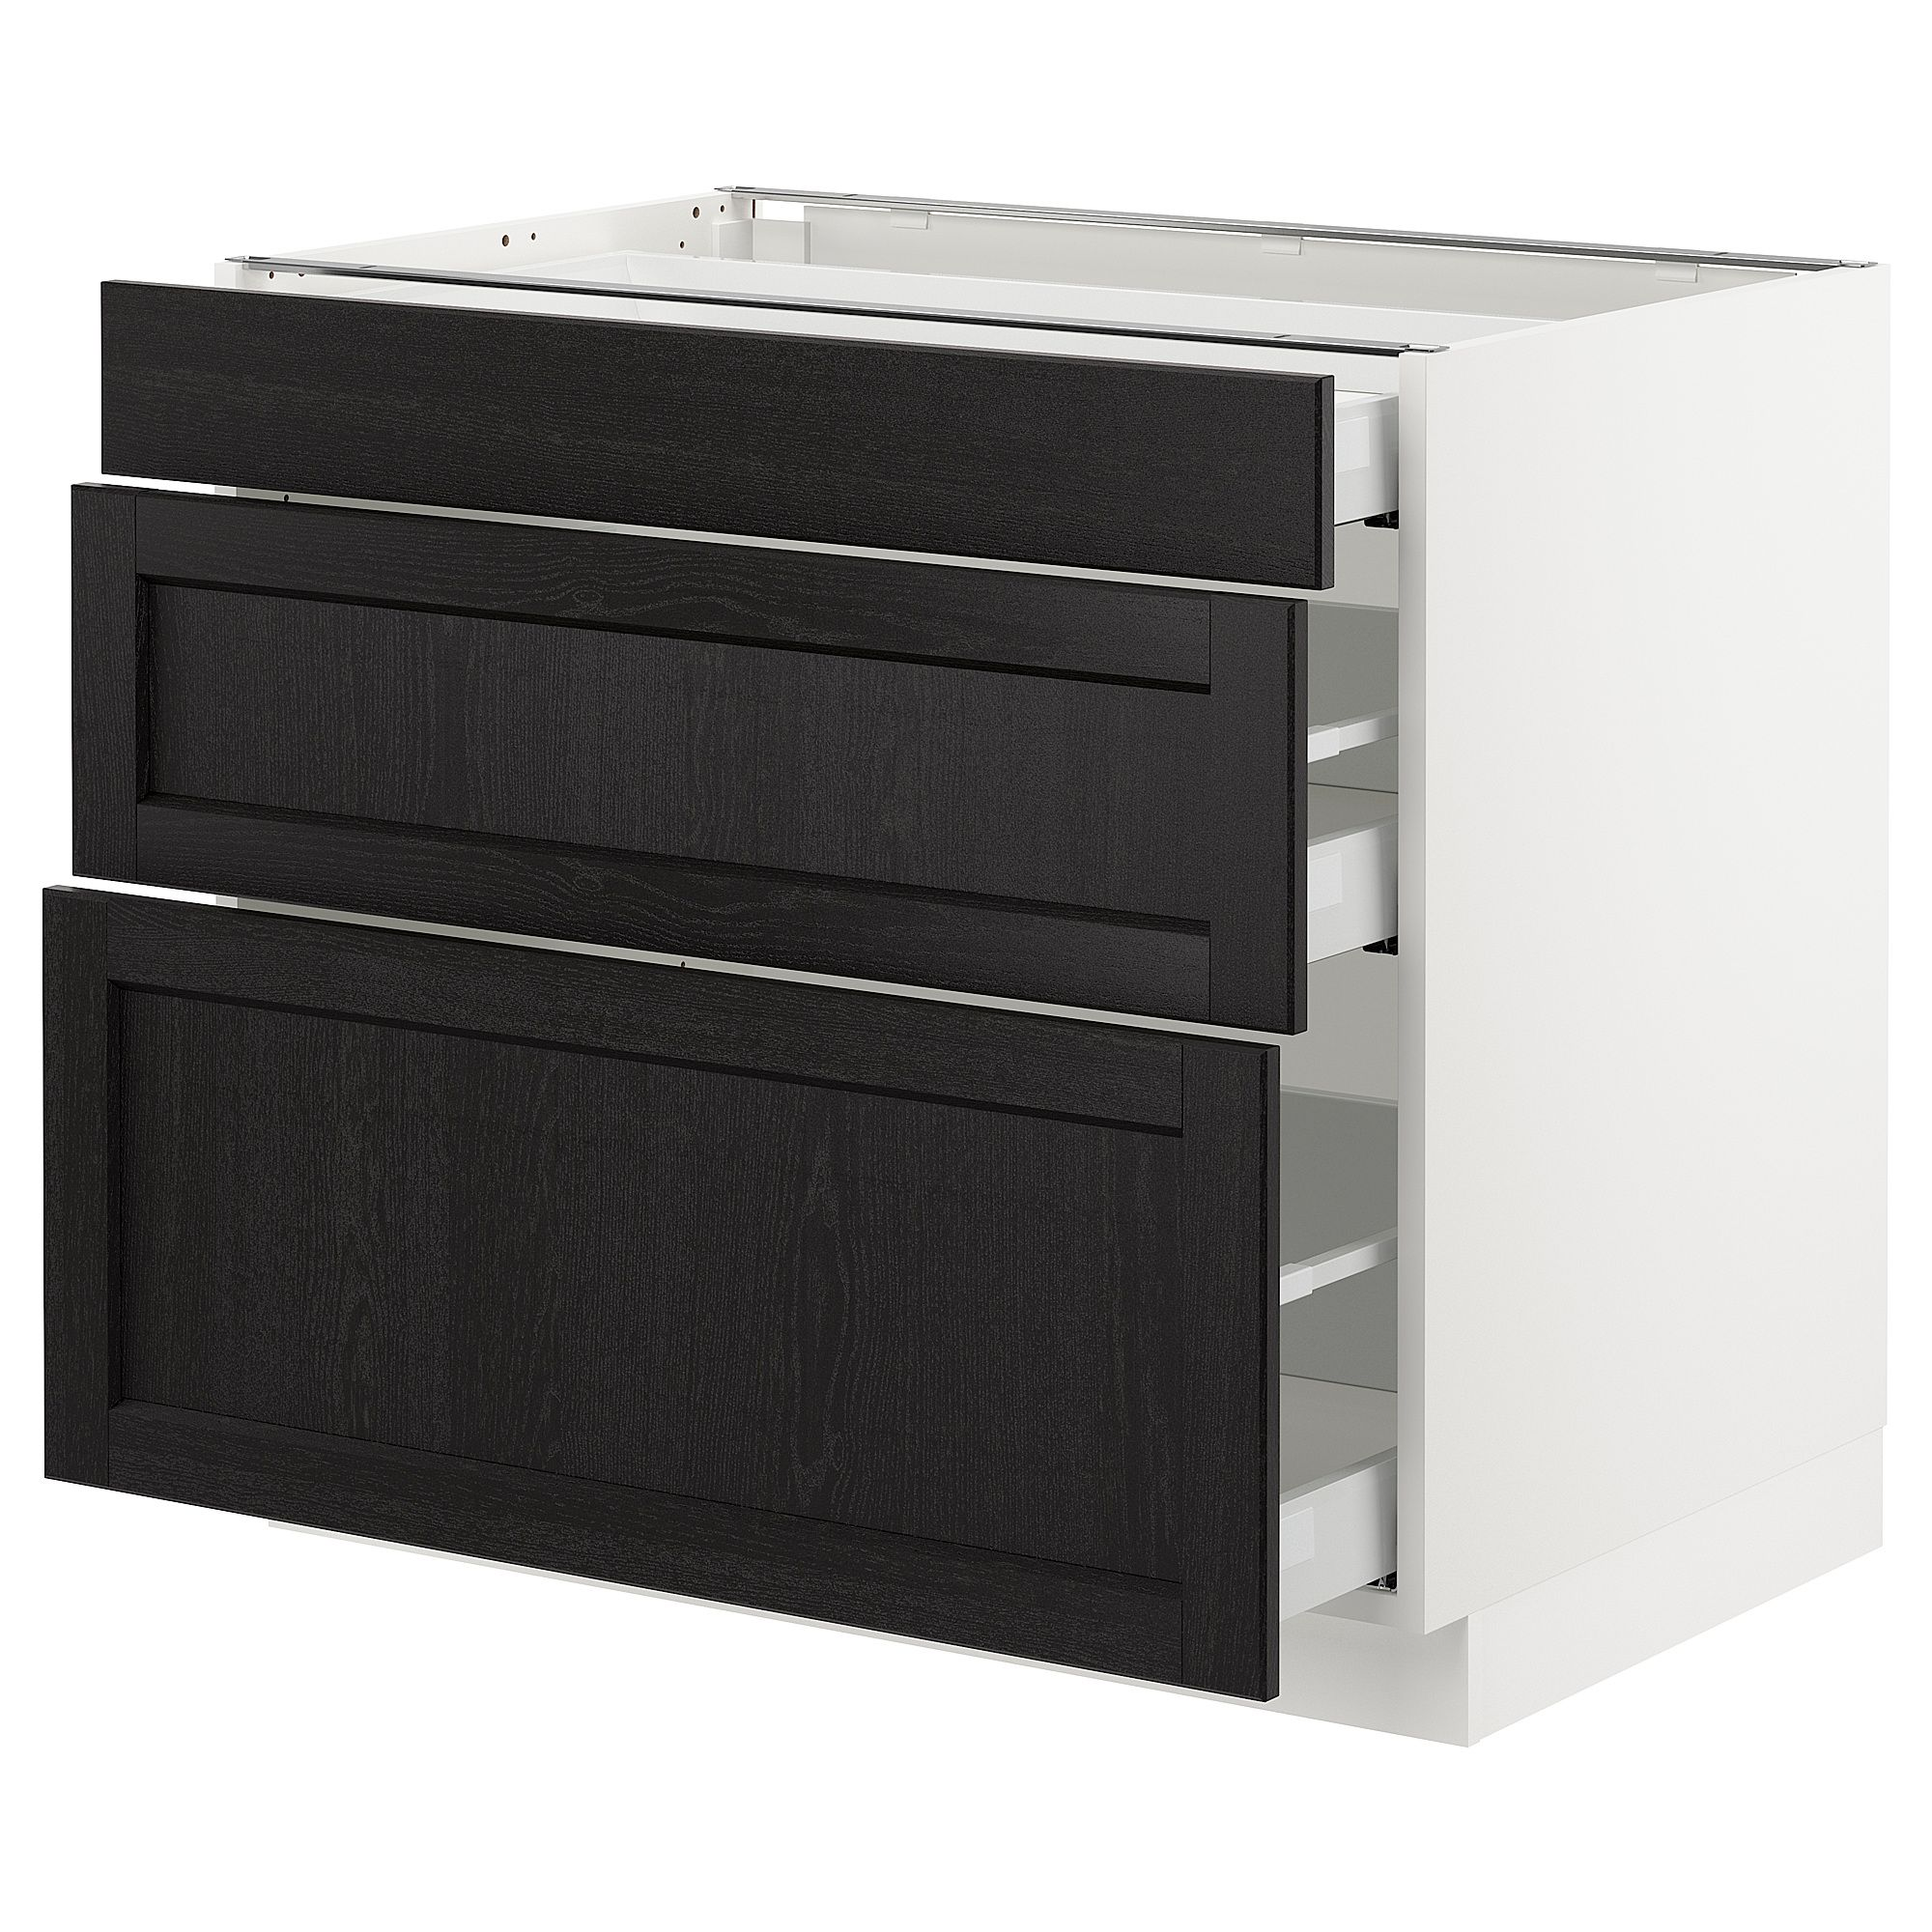 Ikea Home Planner Italiano sektion base cabinet with 3 drawers - white maximera